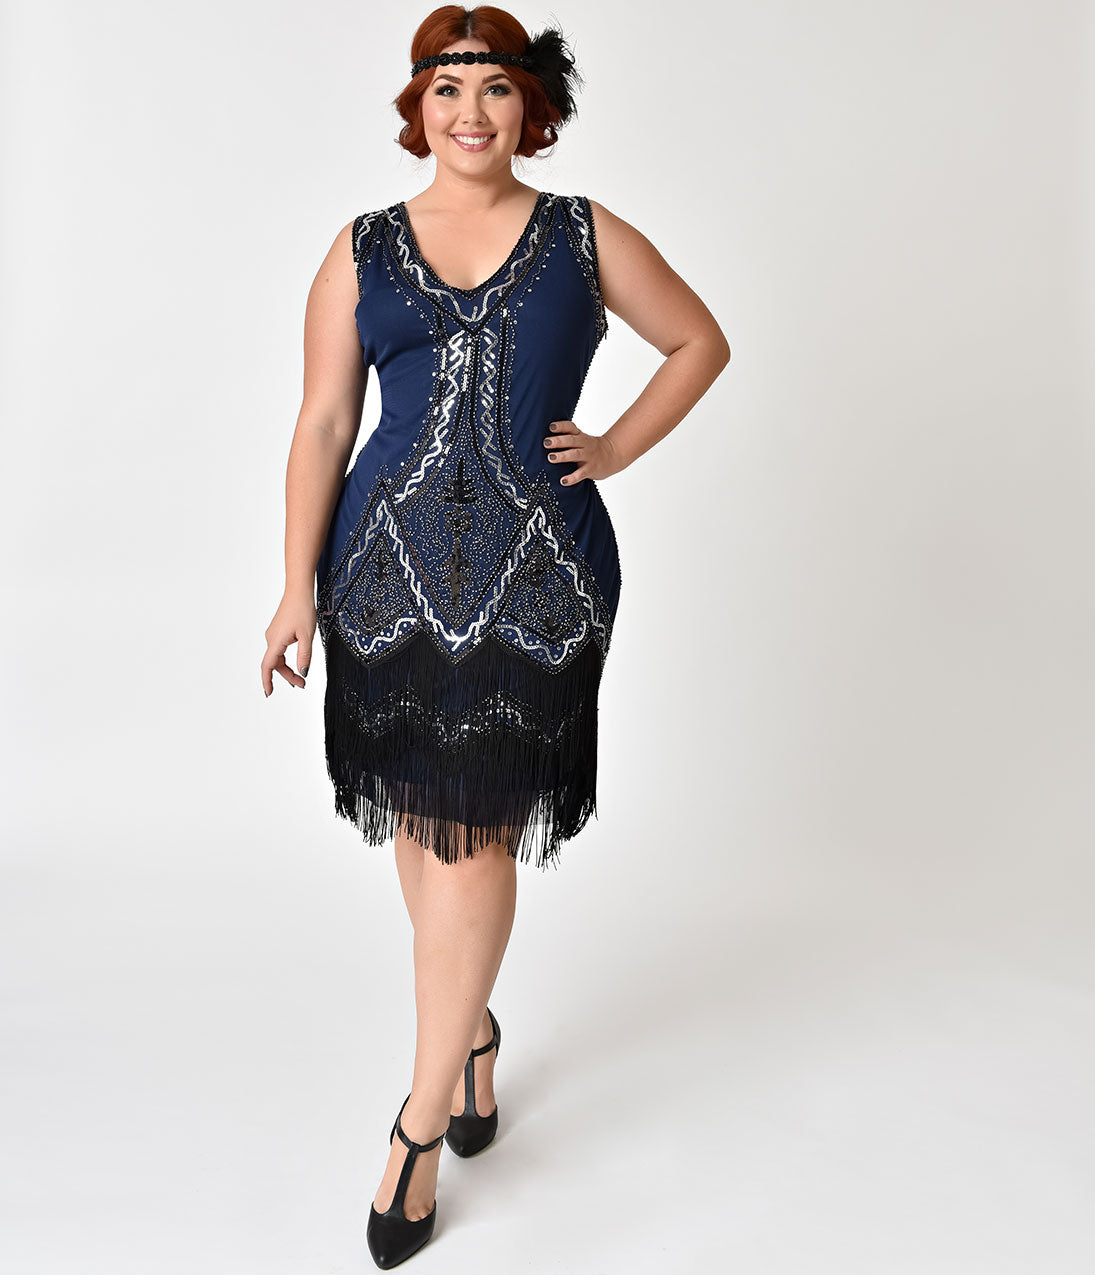 Roaring 20s Costumes- Flapper Costumes, Gangster Costumes 1920S Style Navy Blue Beaded Sylvie Flapper Dress $74.00 AT vintagedancer.com